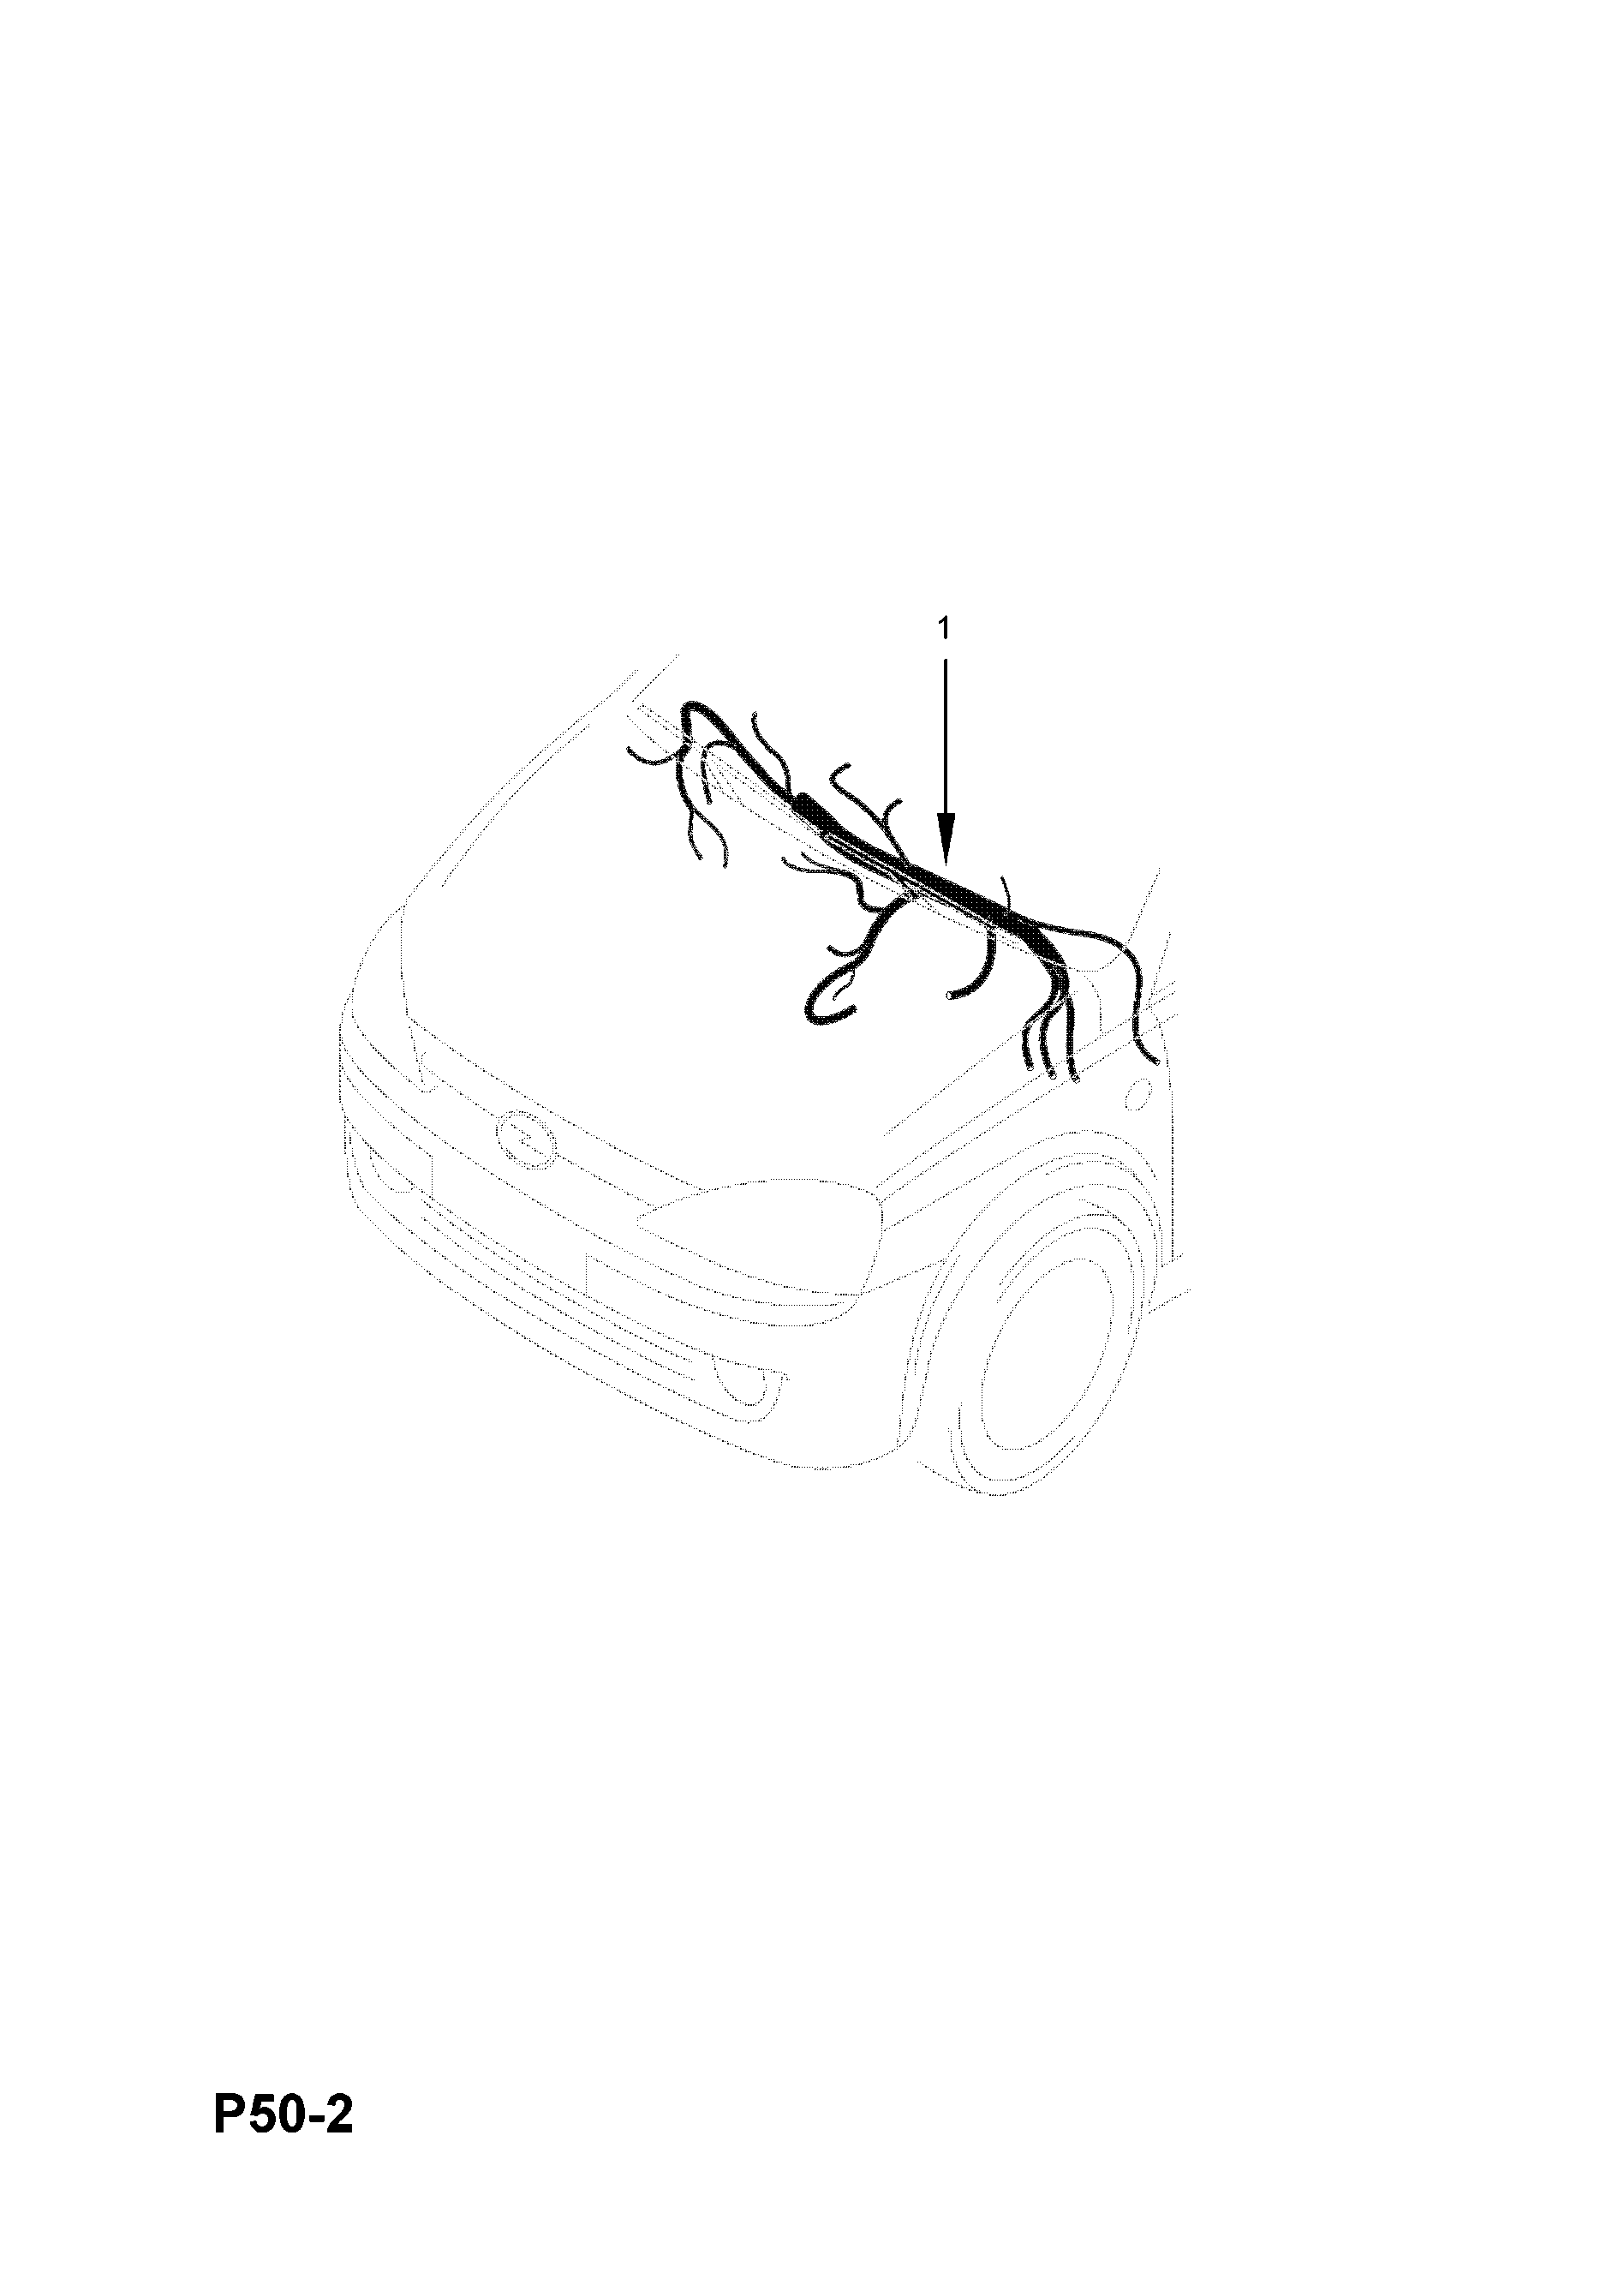 Instrument Panel Wiring Harness Contd Excside Air Bag Rhd Hatch Hatchvan F08f68 23000001 23999999 24000001 24999999 26000001 26999999 Vauxhall